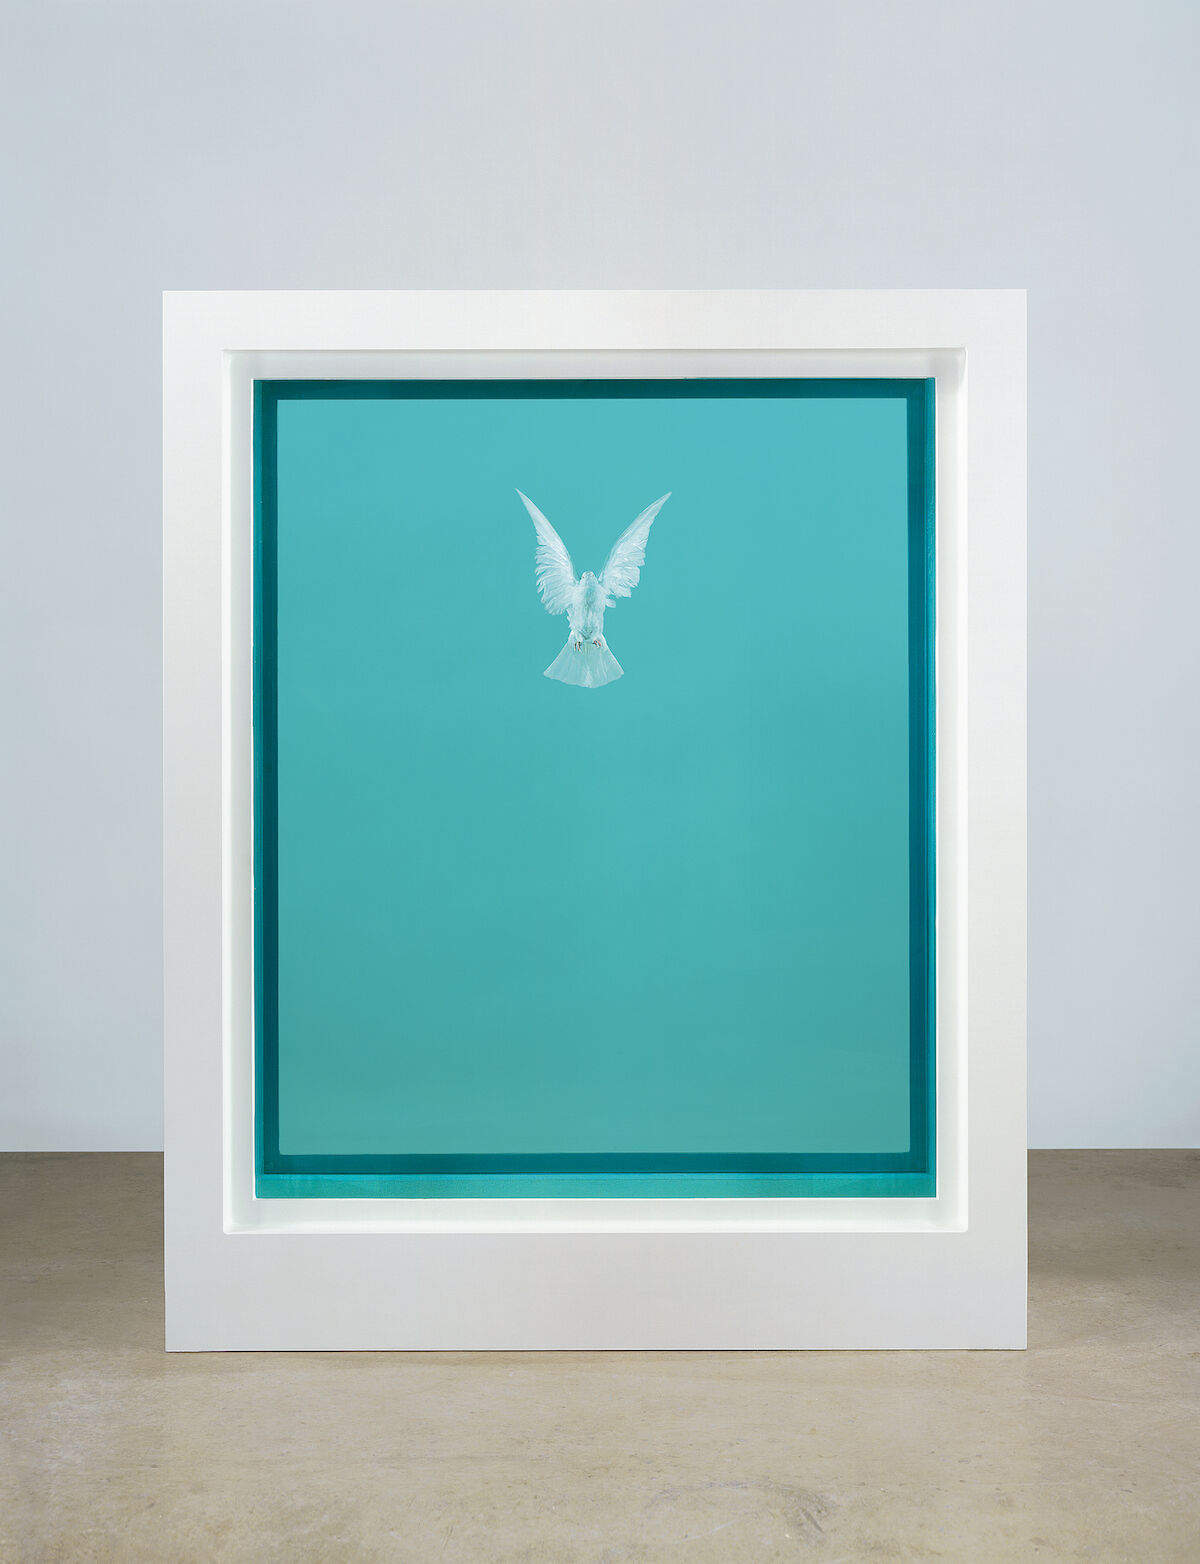 Damien Hirst, The Incomplete Truth, 2006. Est. £1 million–1.5 million. Courtesy Christie's Images Ltd.